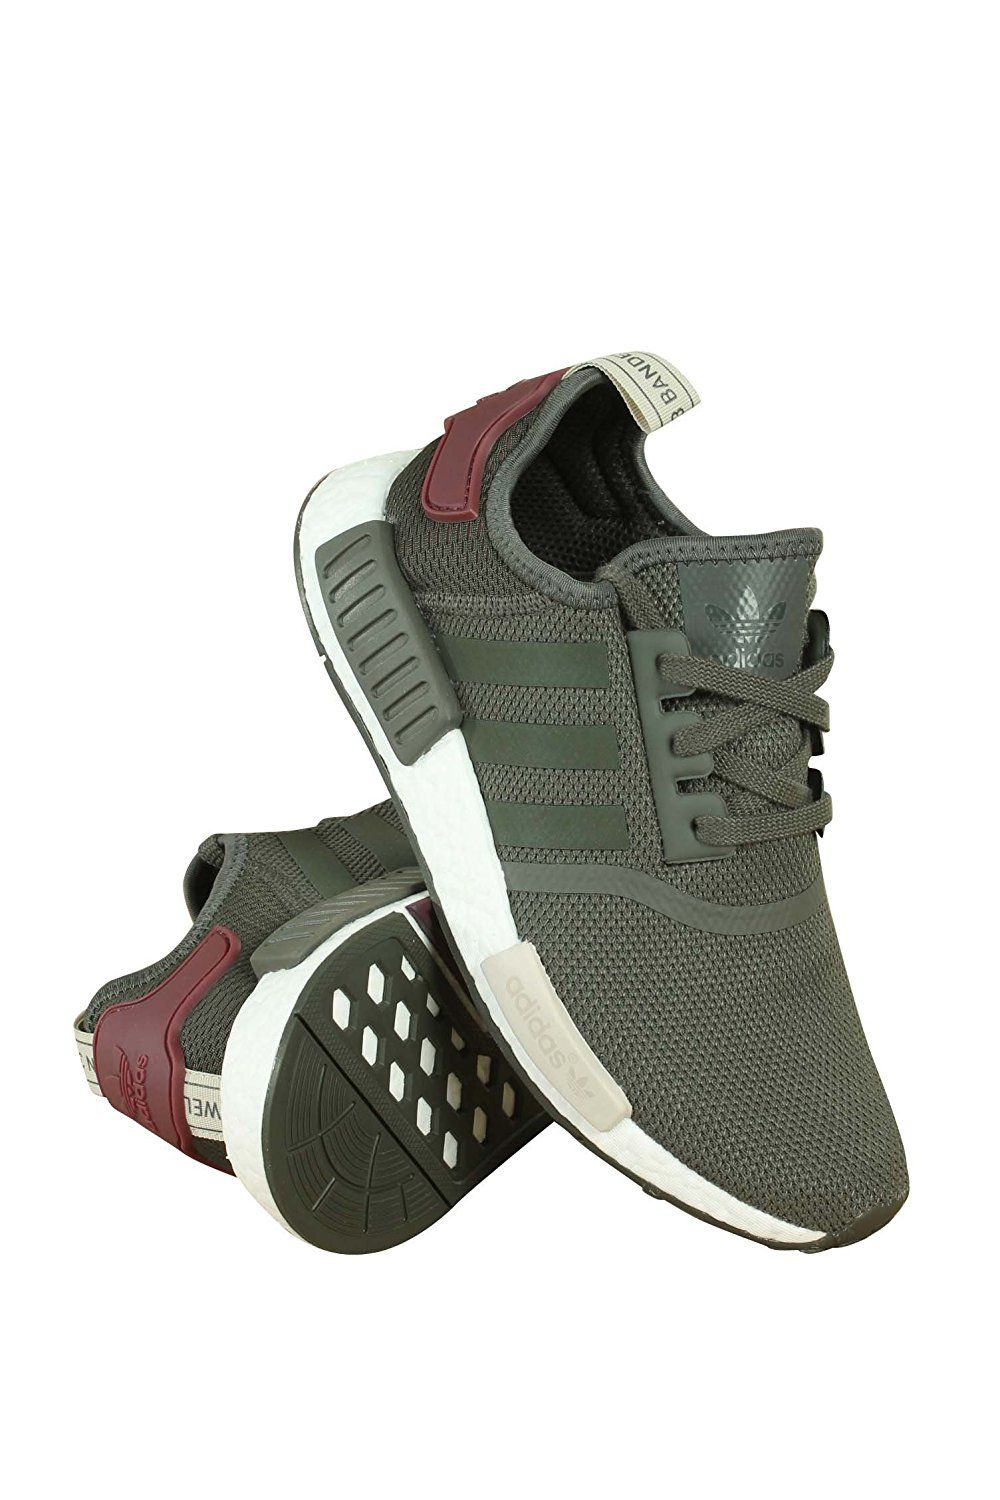 2048791040fce Amazon.com | NMD R1 W Ladies in Utility Green/Maroon by Adidas, 8 ...